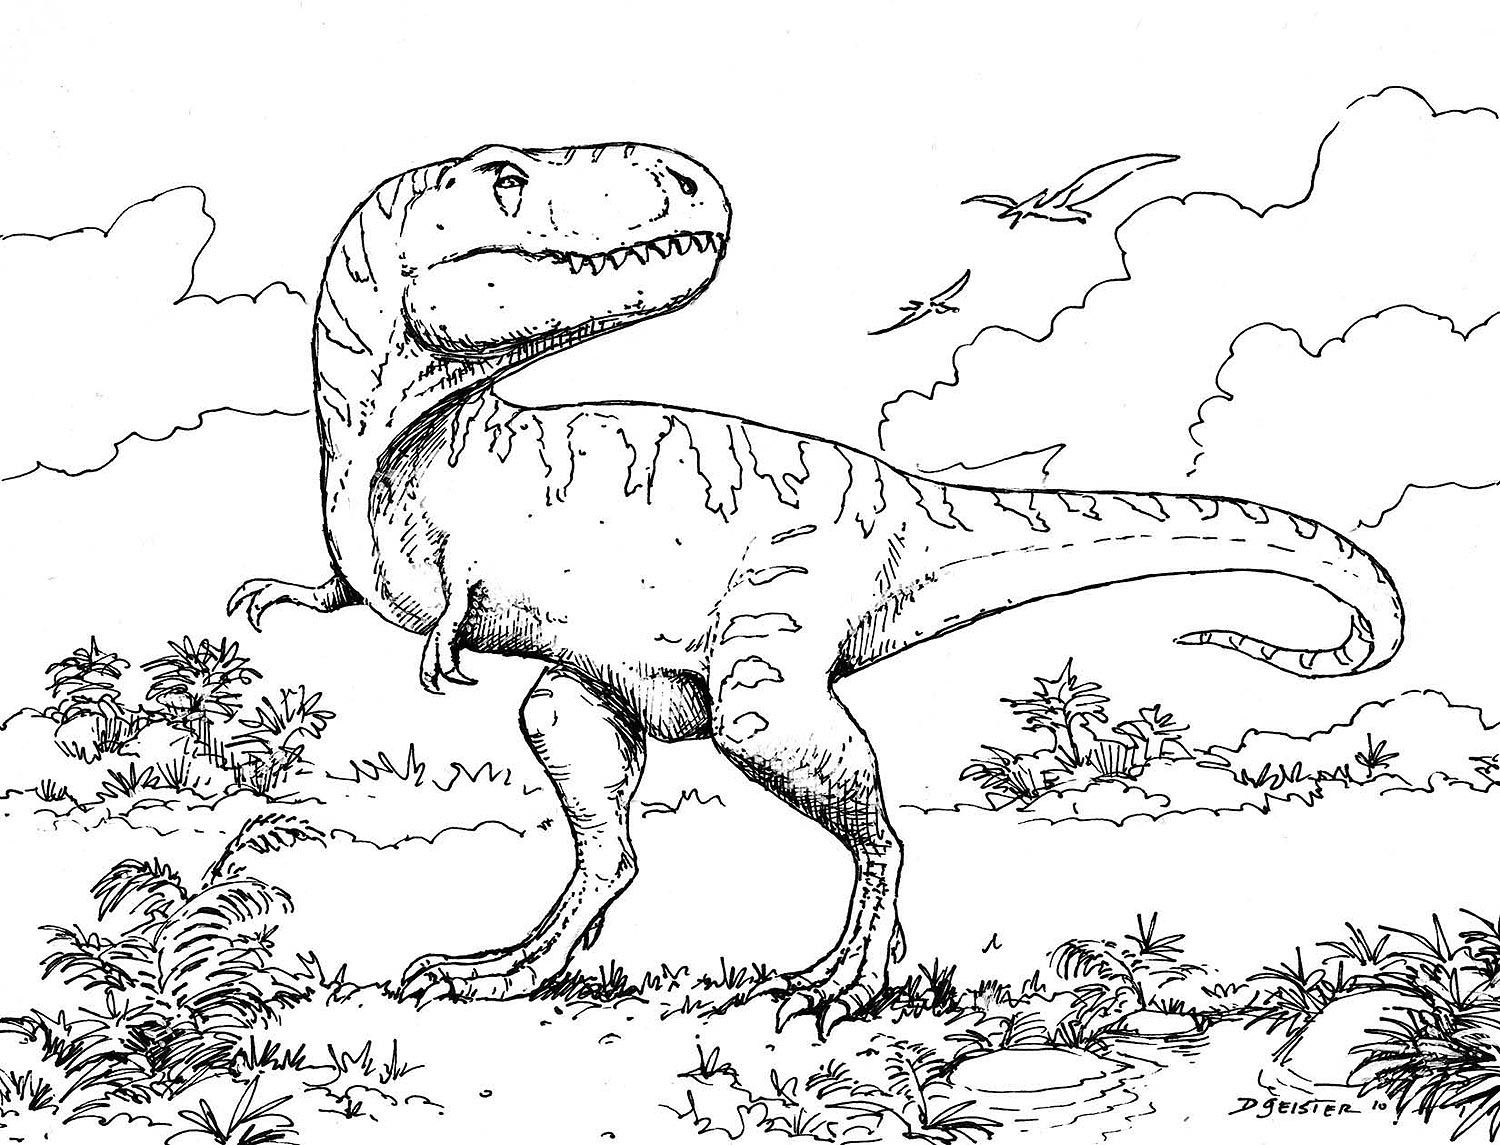 Dinosaurier Malvorlagen Ausmalbilder : Dinosaur Coloring Pages To Print Coloring Pages Pinterest